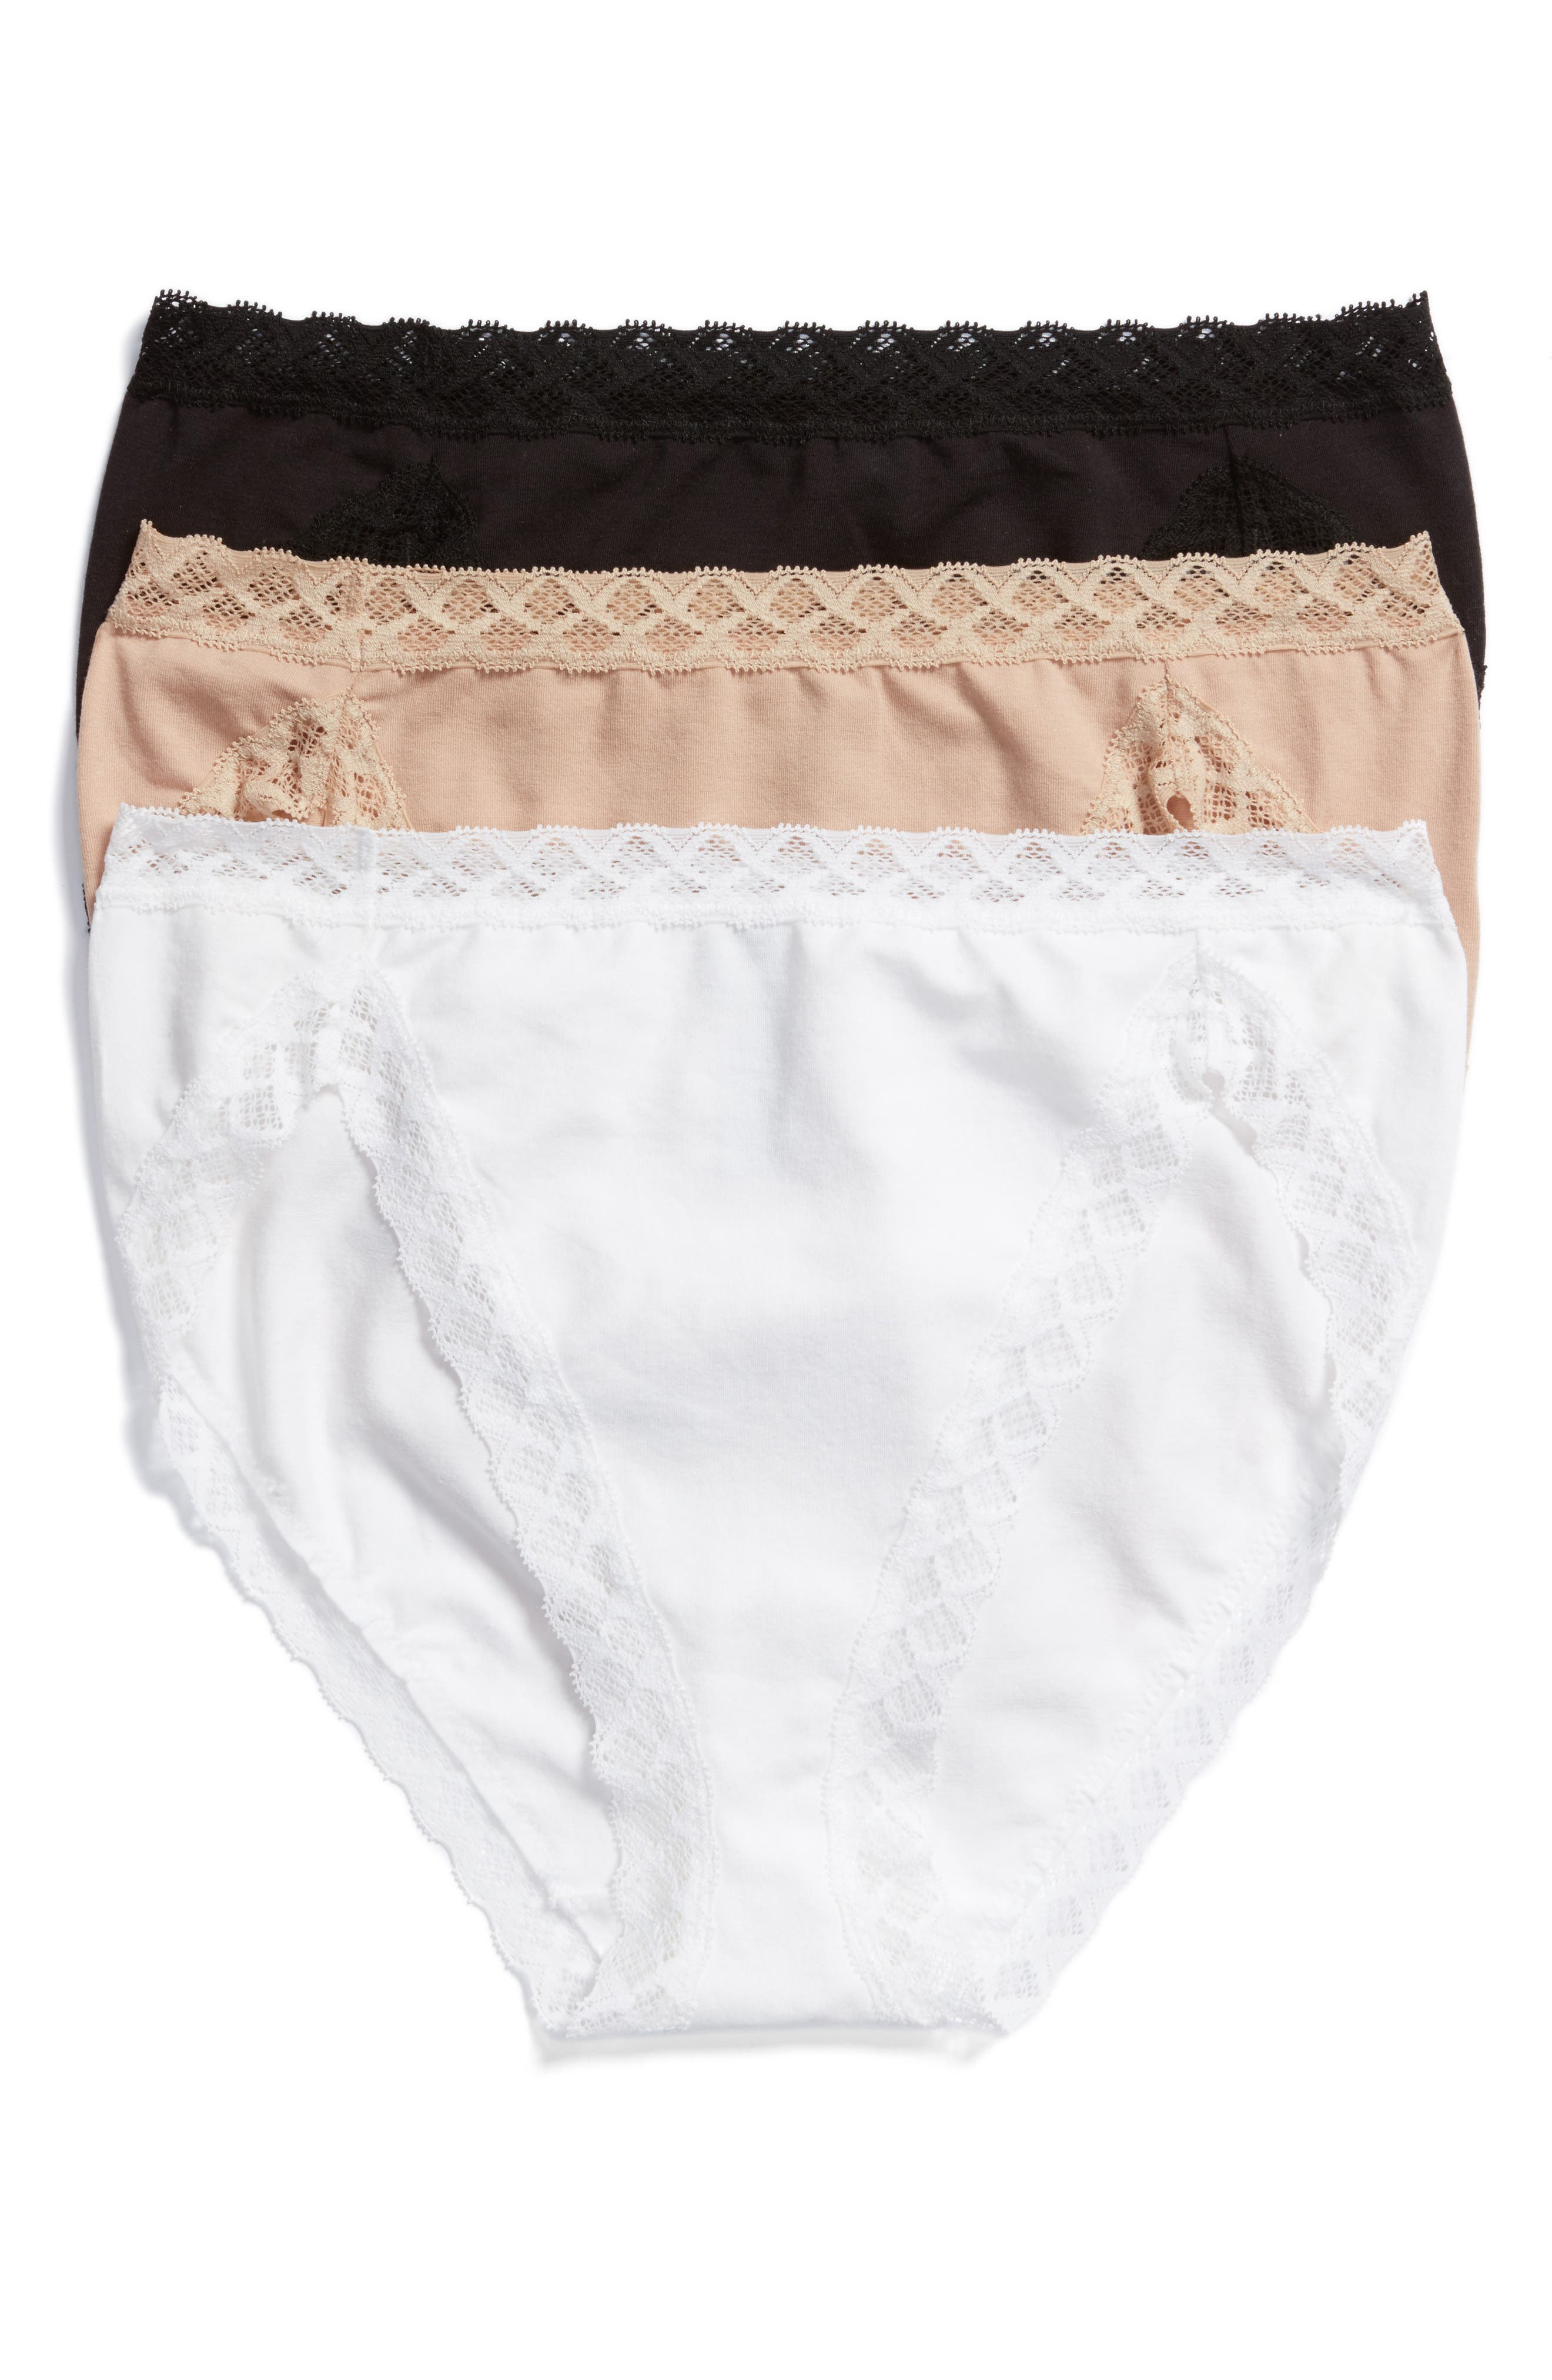 'Bliss' French Cut Briefs,                             Main thumbnail 1, color,                             BLACK/ CAFE